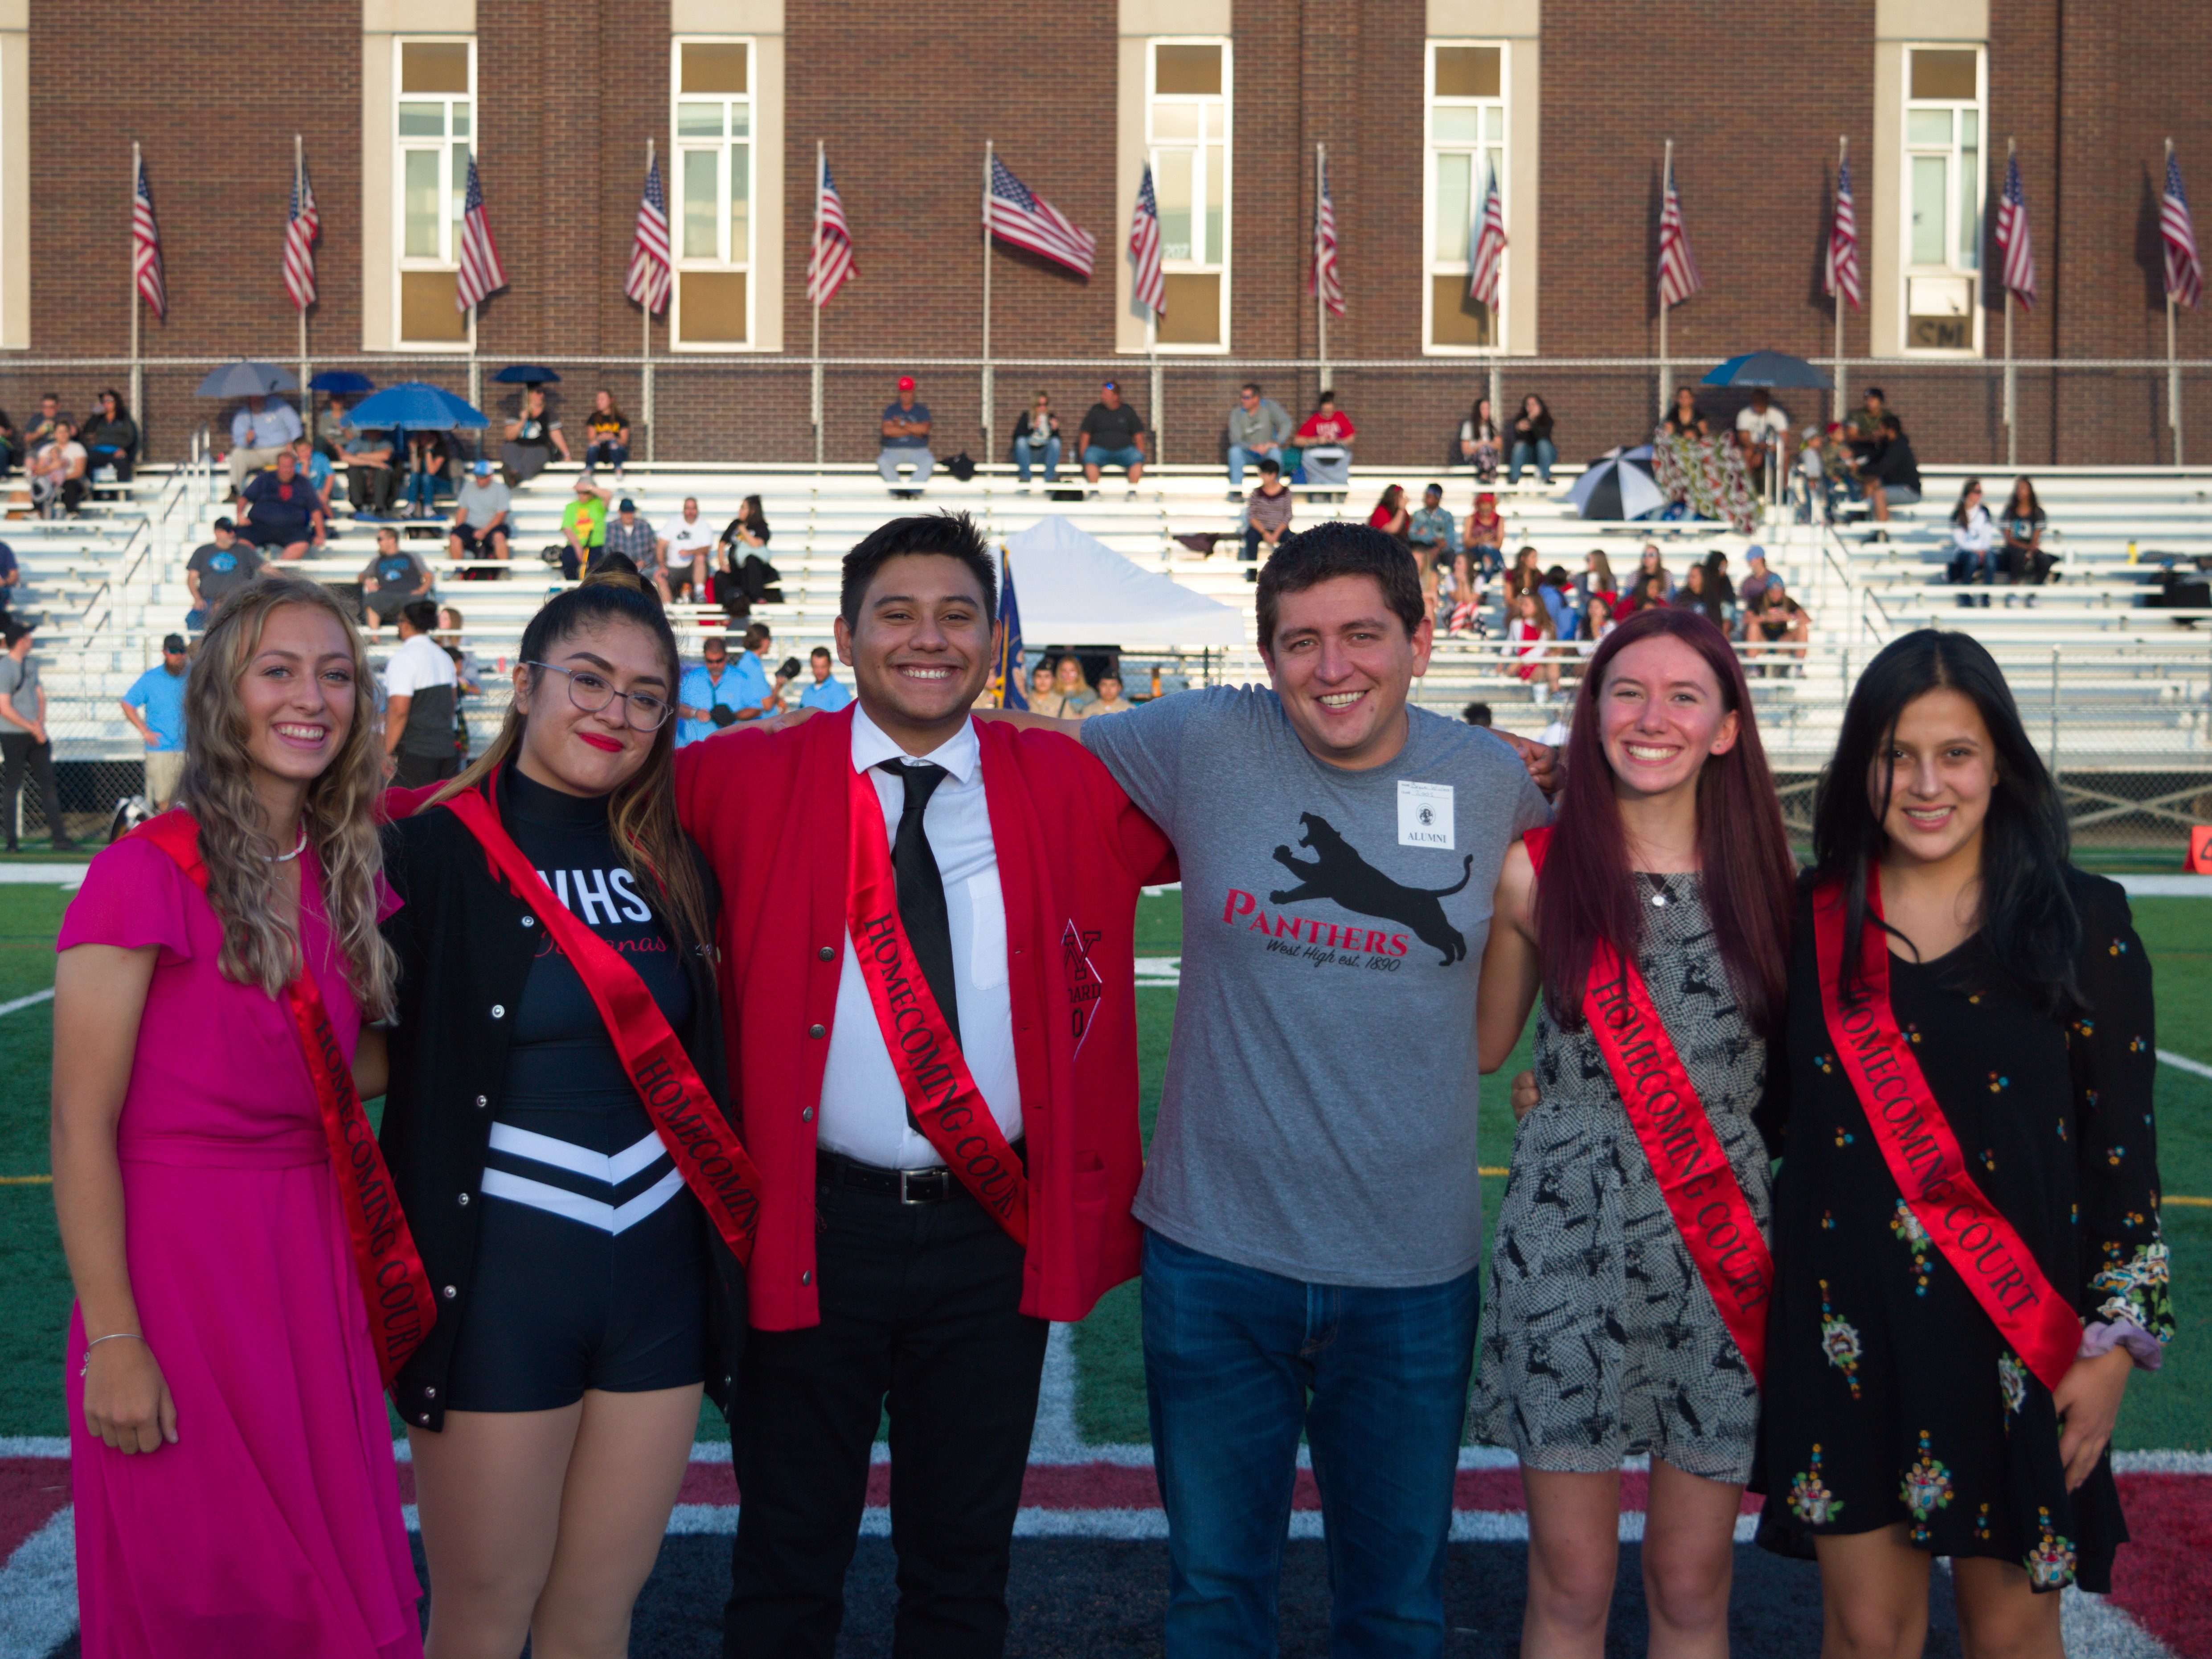 2019 Homecoming Royalty Court Announced